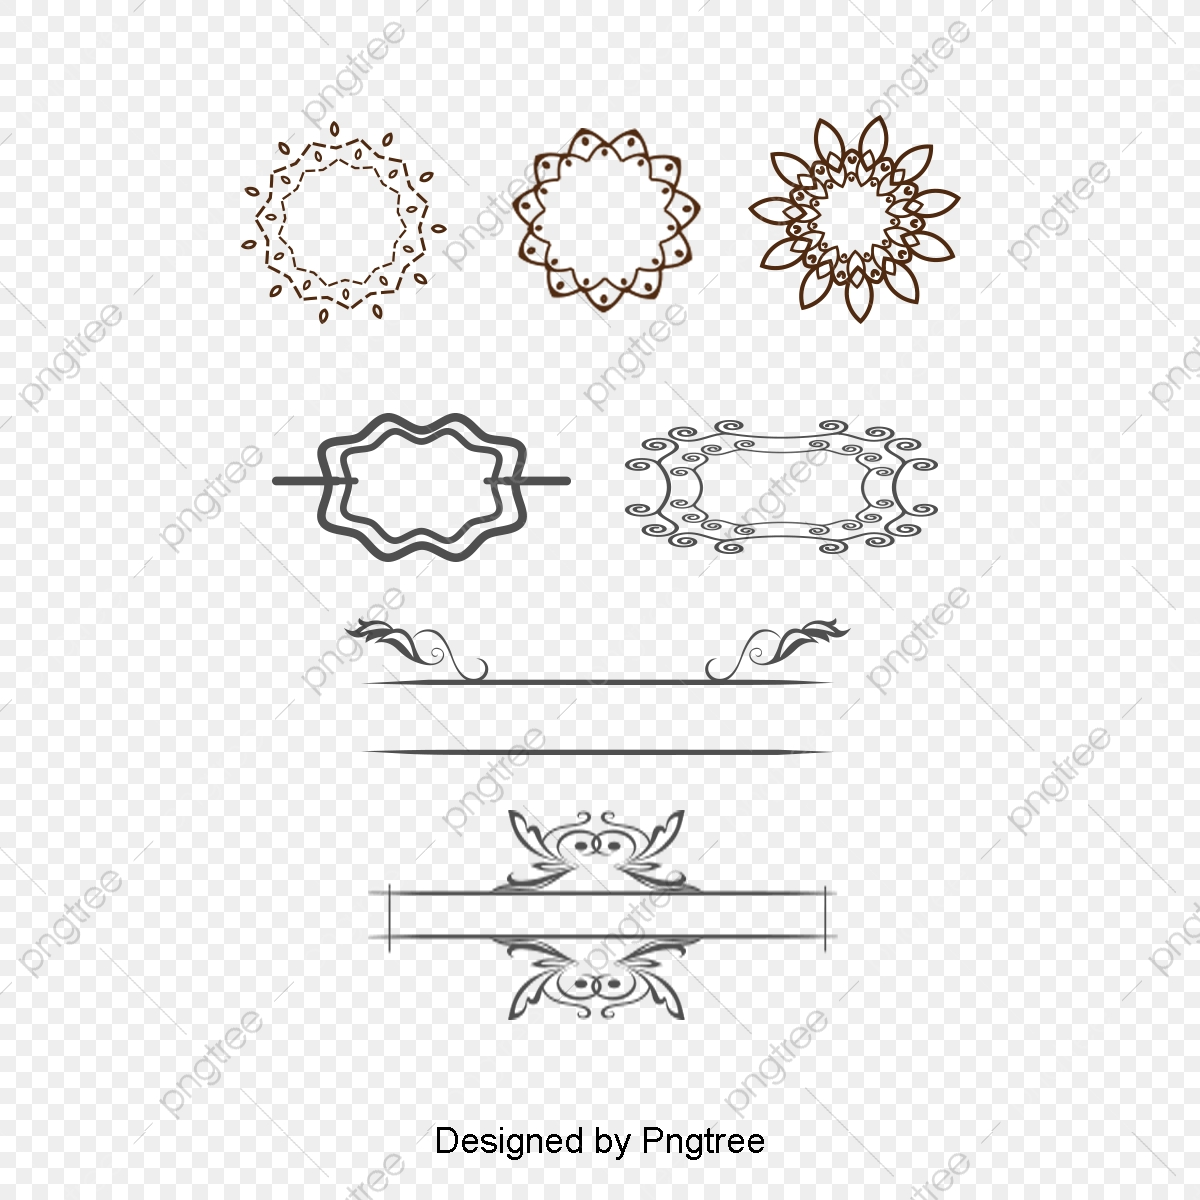 Pattern borders and border. Lines clipart dividing line